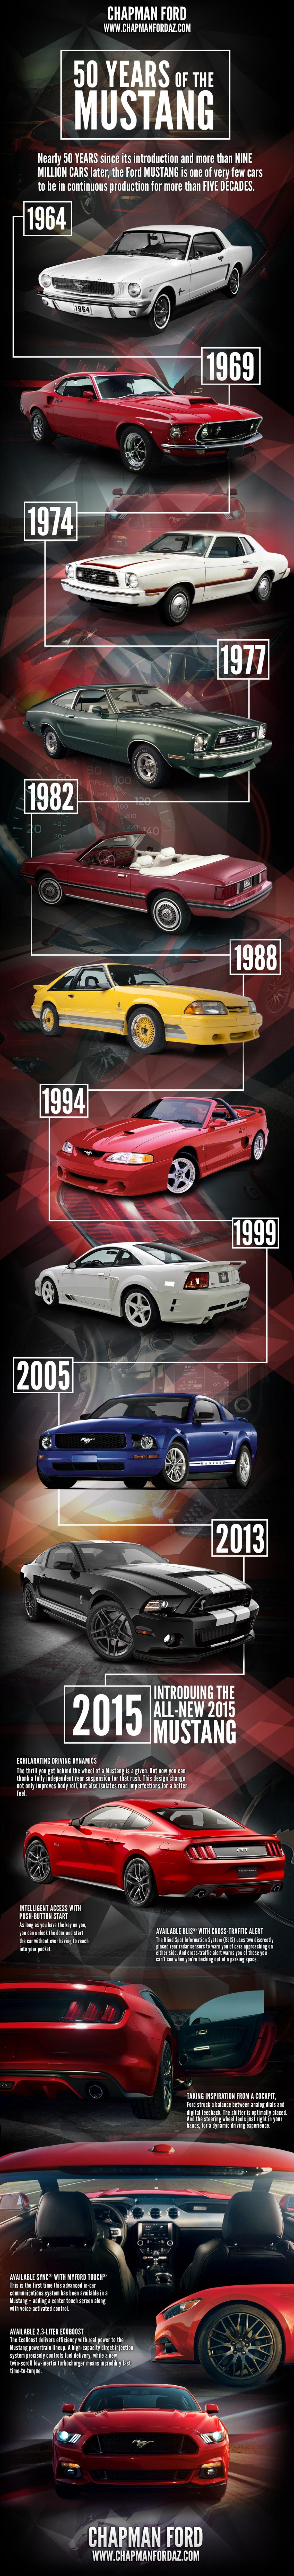 Look Back At The Iconic Ford Mustang Mustang Dream Cars Ford Mustang